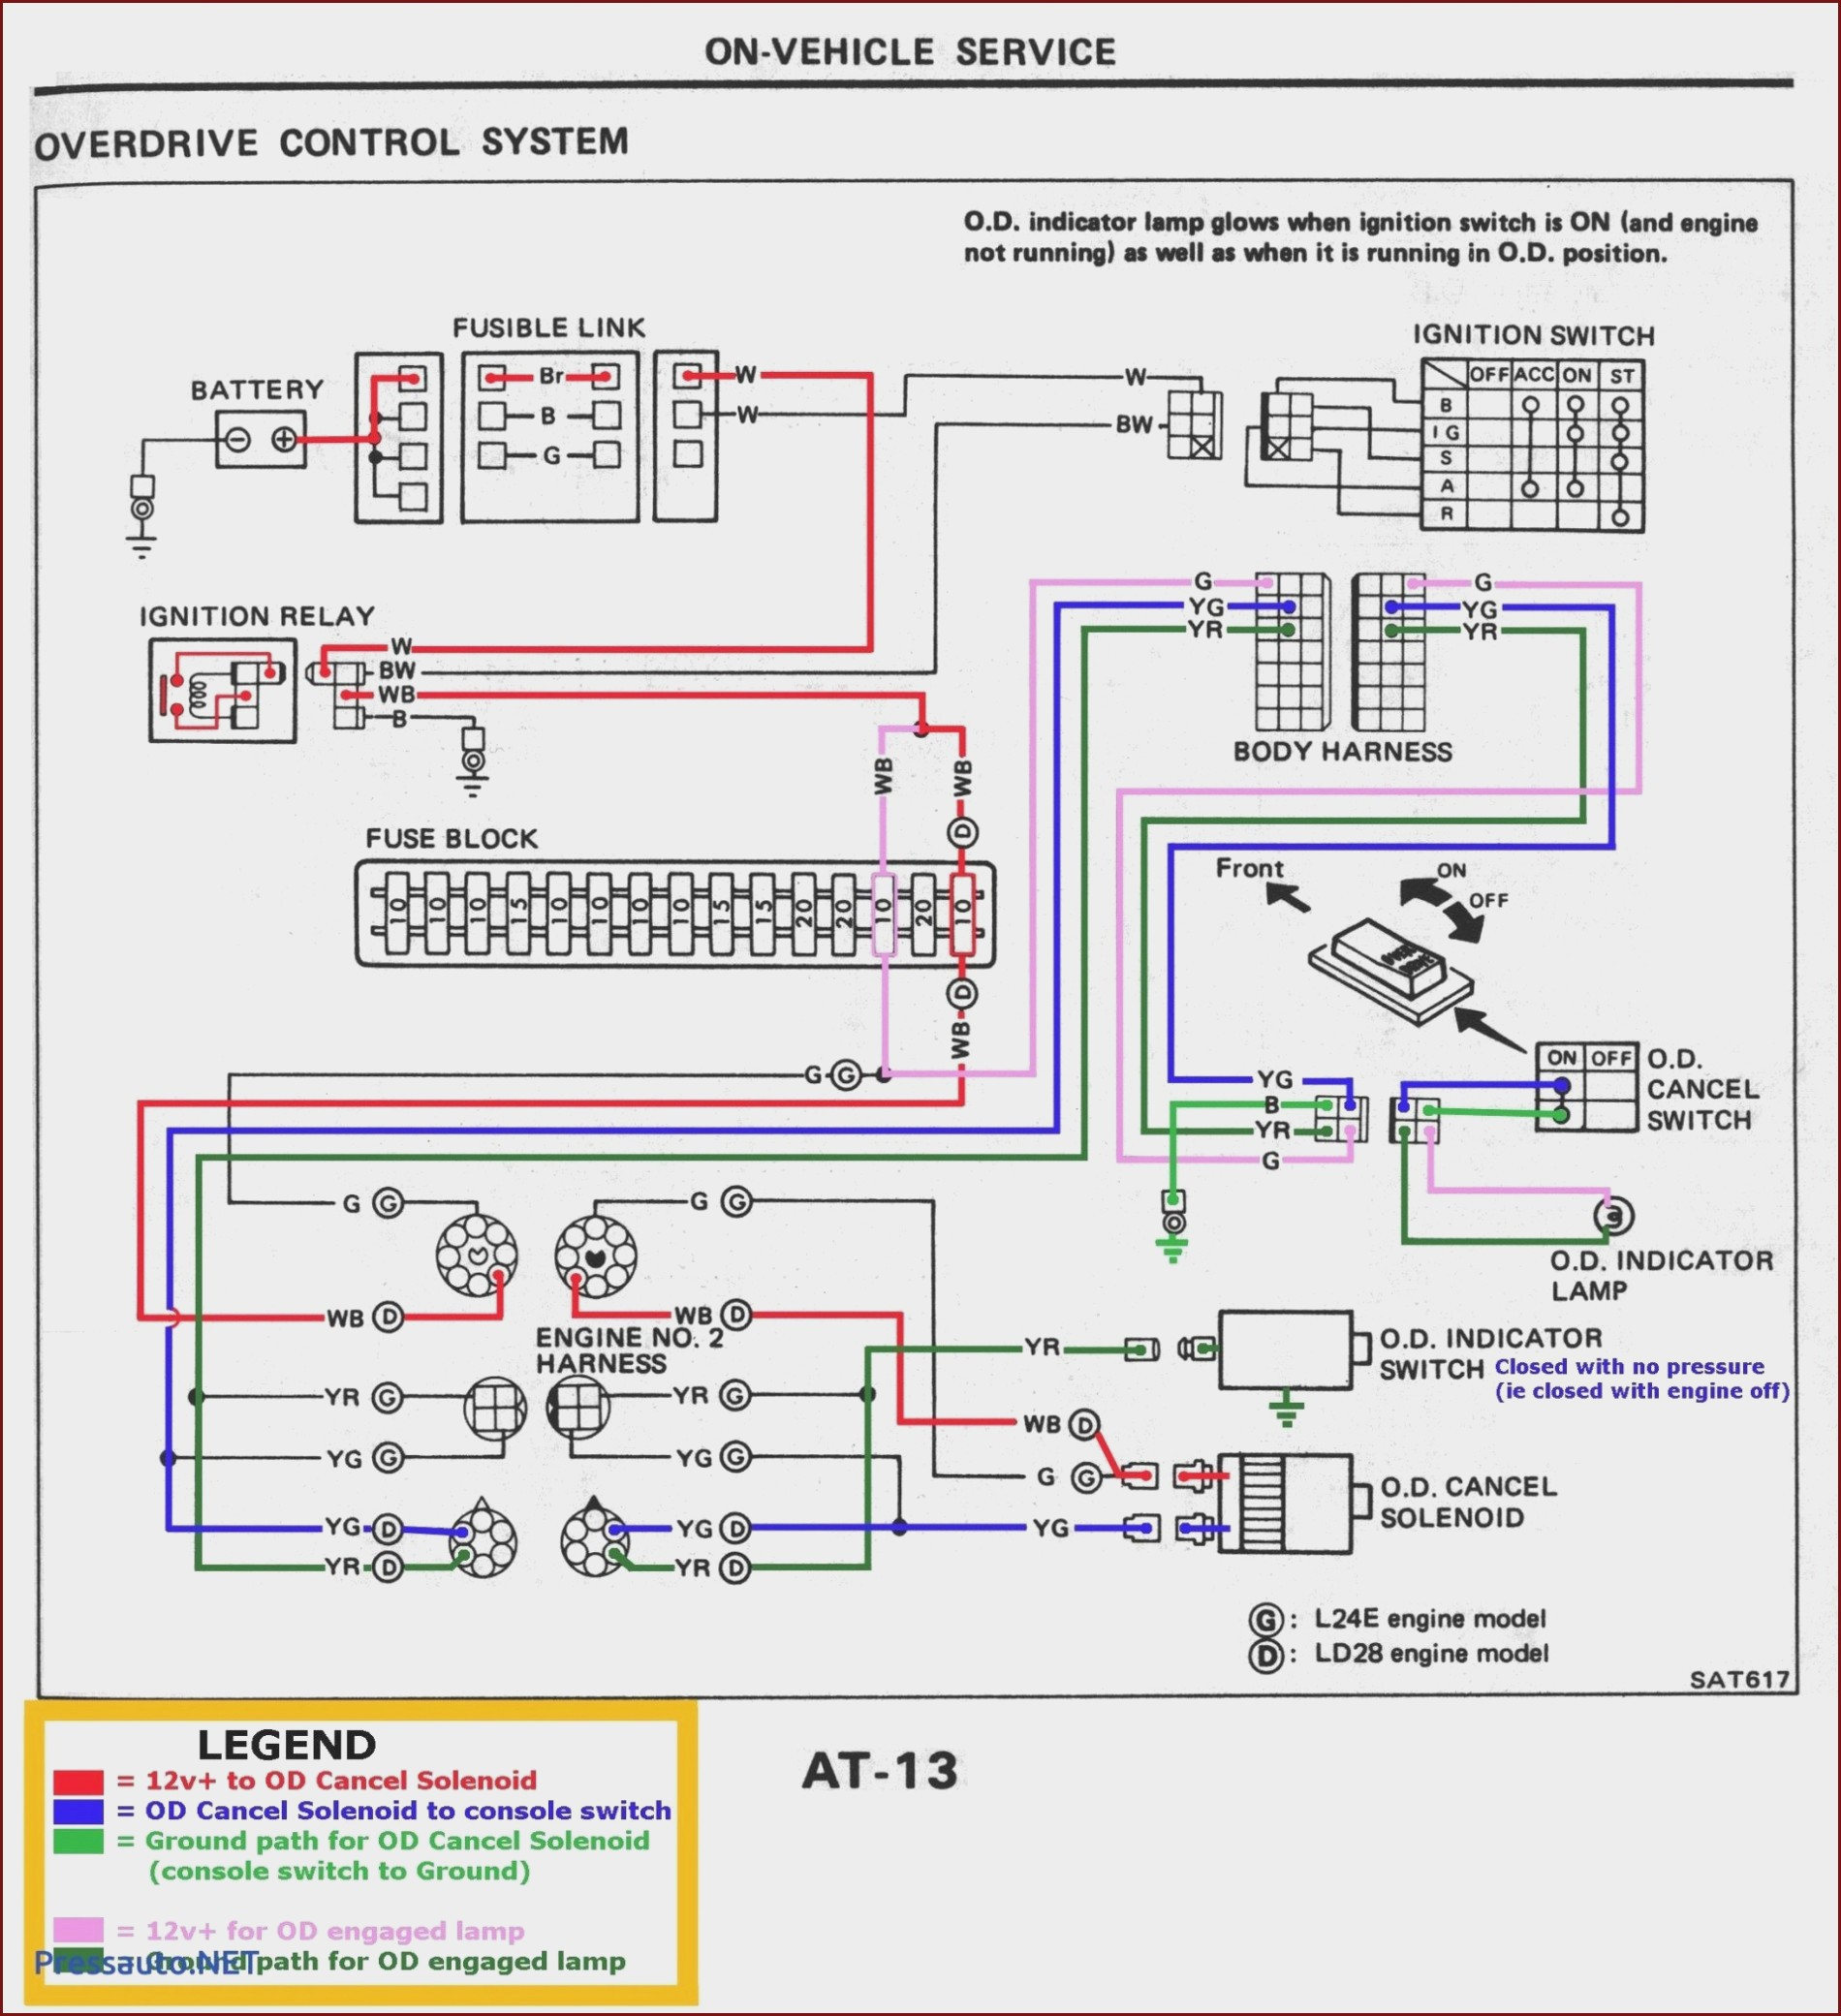 Omc E250 Fpxsif Wiring Diagram Wiring Diagram Options